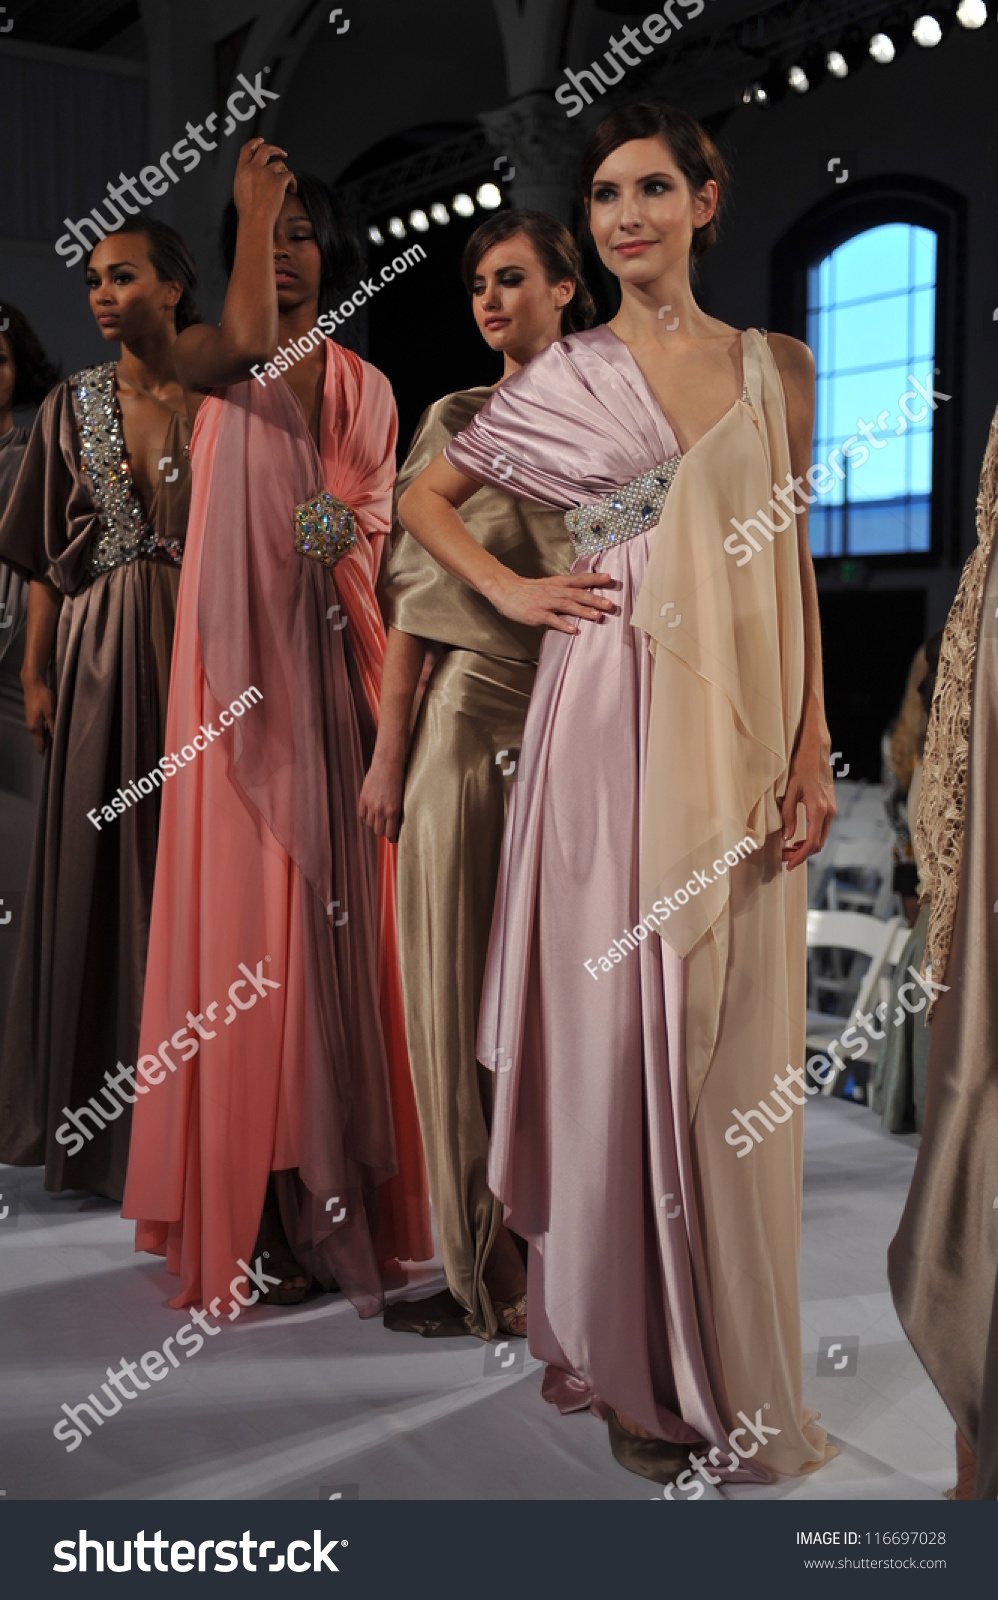 Los Angeles October 18 Models Walking Runway Finale For Fashion Show During Style Fashion